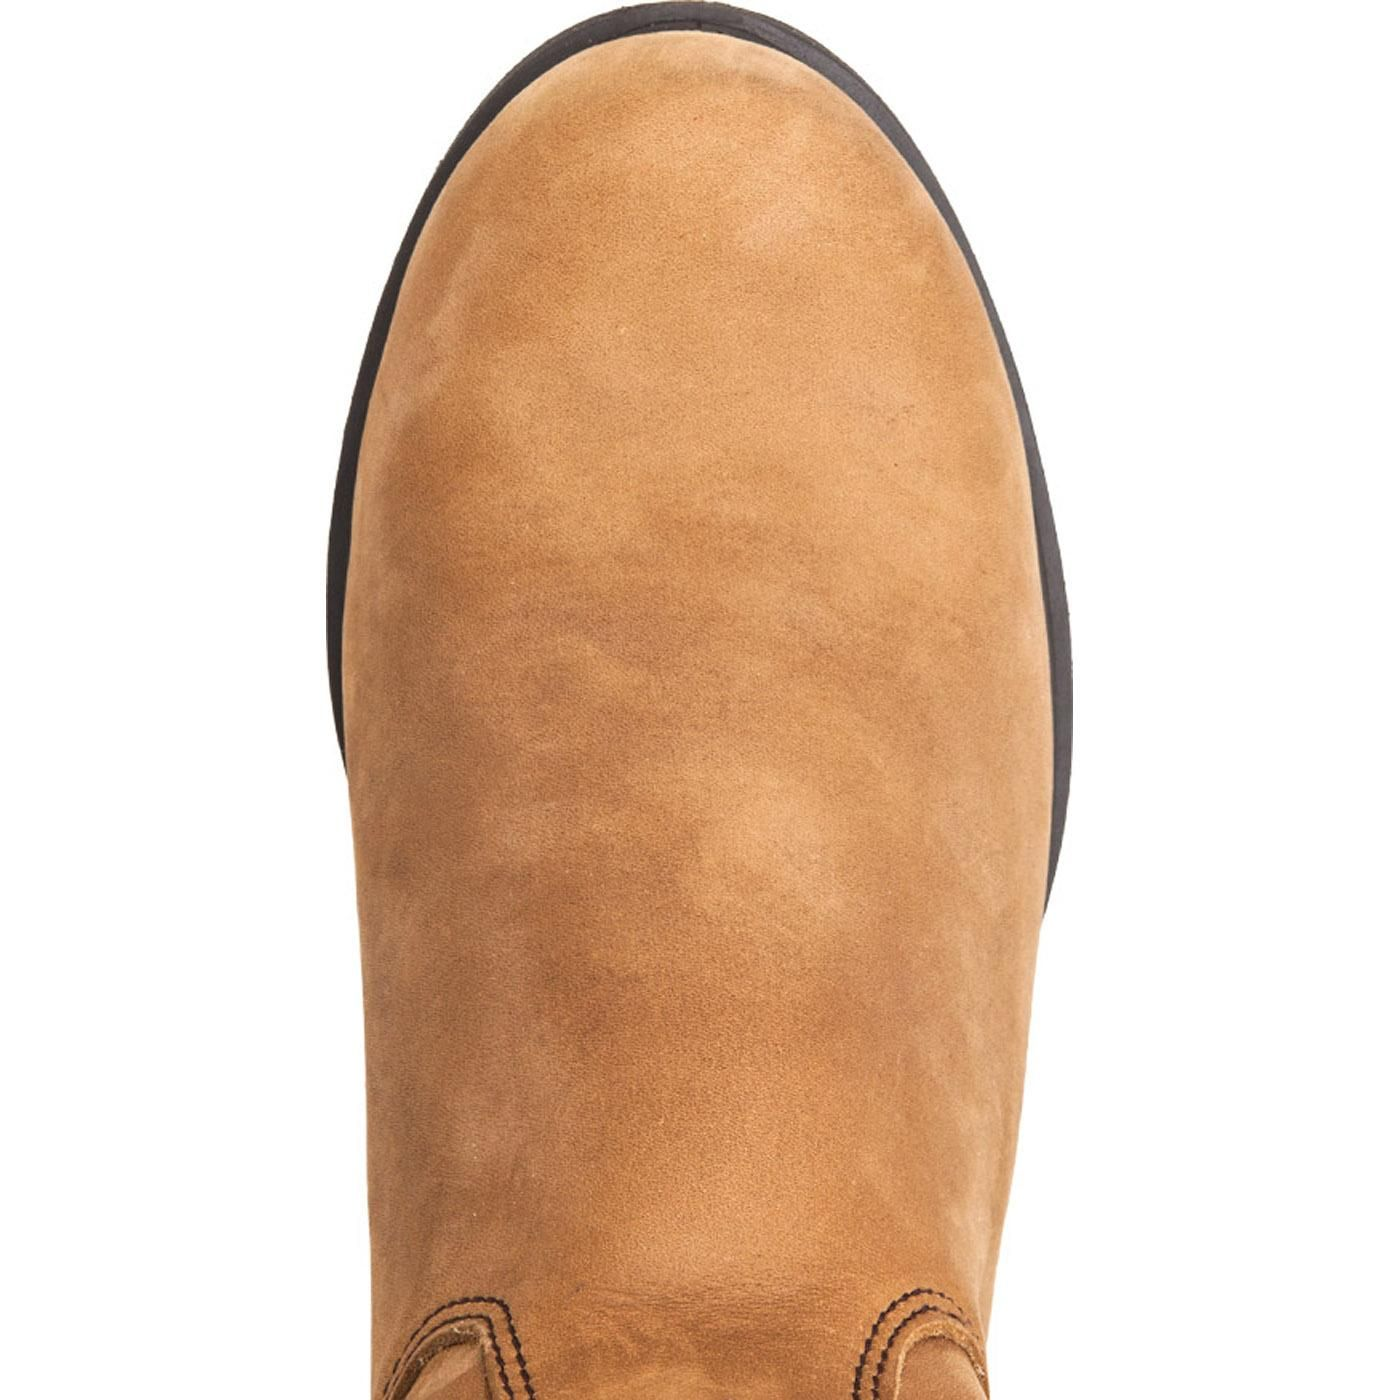 540acca2269 Georgia Boot Farm and Ranch Wellington Work Boot | Work Boots ...